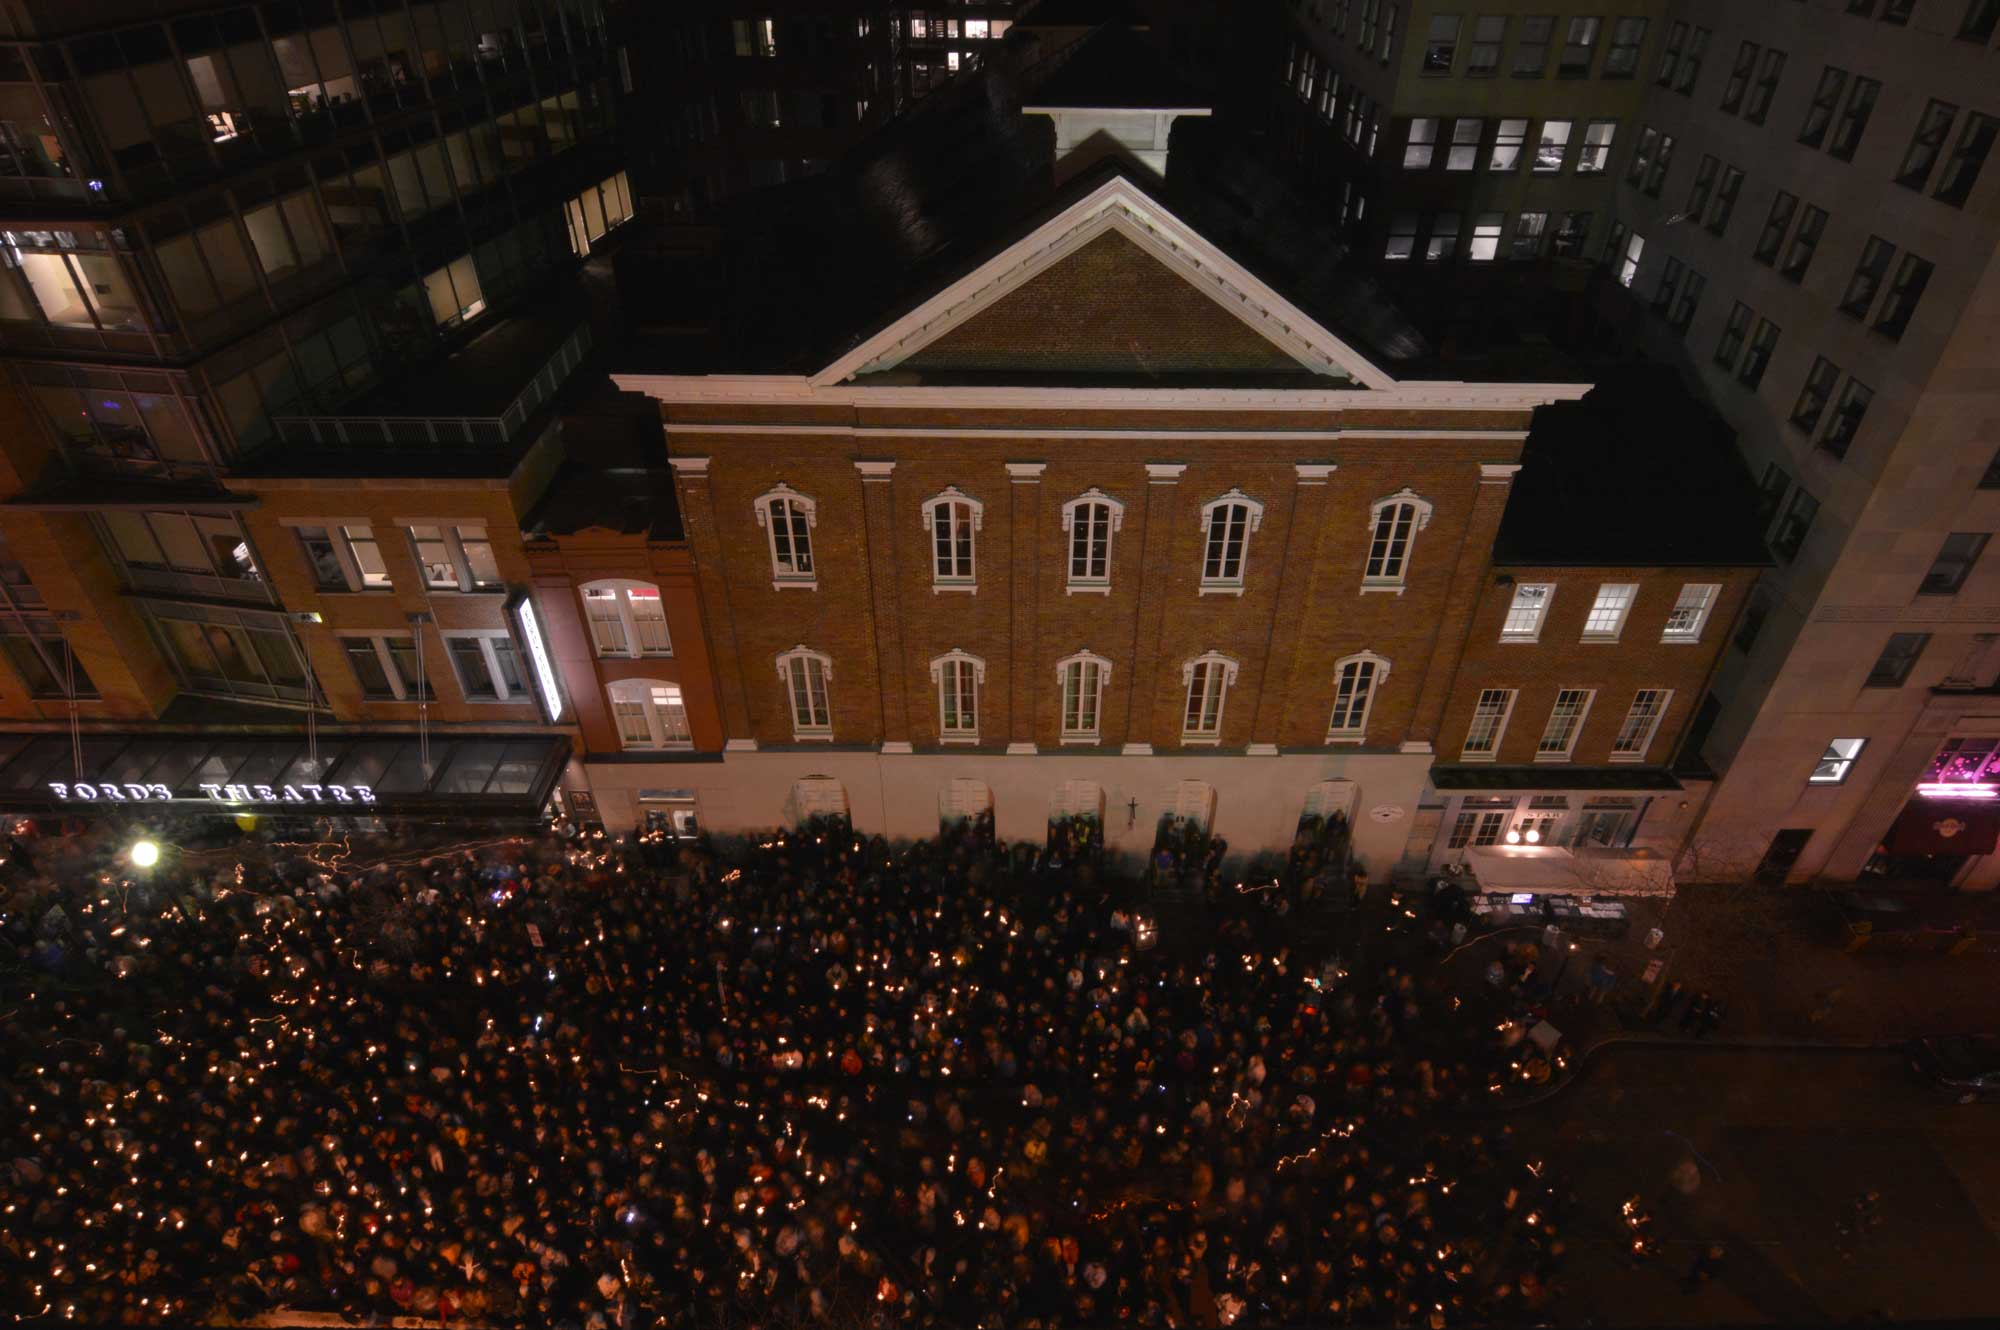 Ariel photo at the front facade of Ford's Theatre taken at night. Image shows a crowd of more than a thousand people out front holding candles. This event was part of the 150th commemoration of President Lincoln's assassination in 2015.